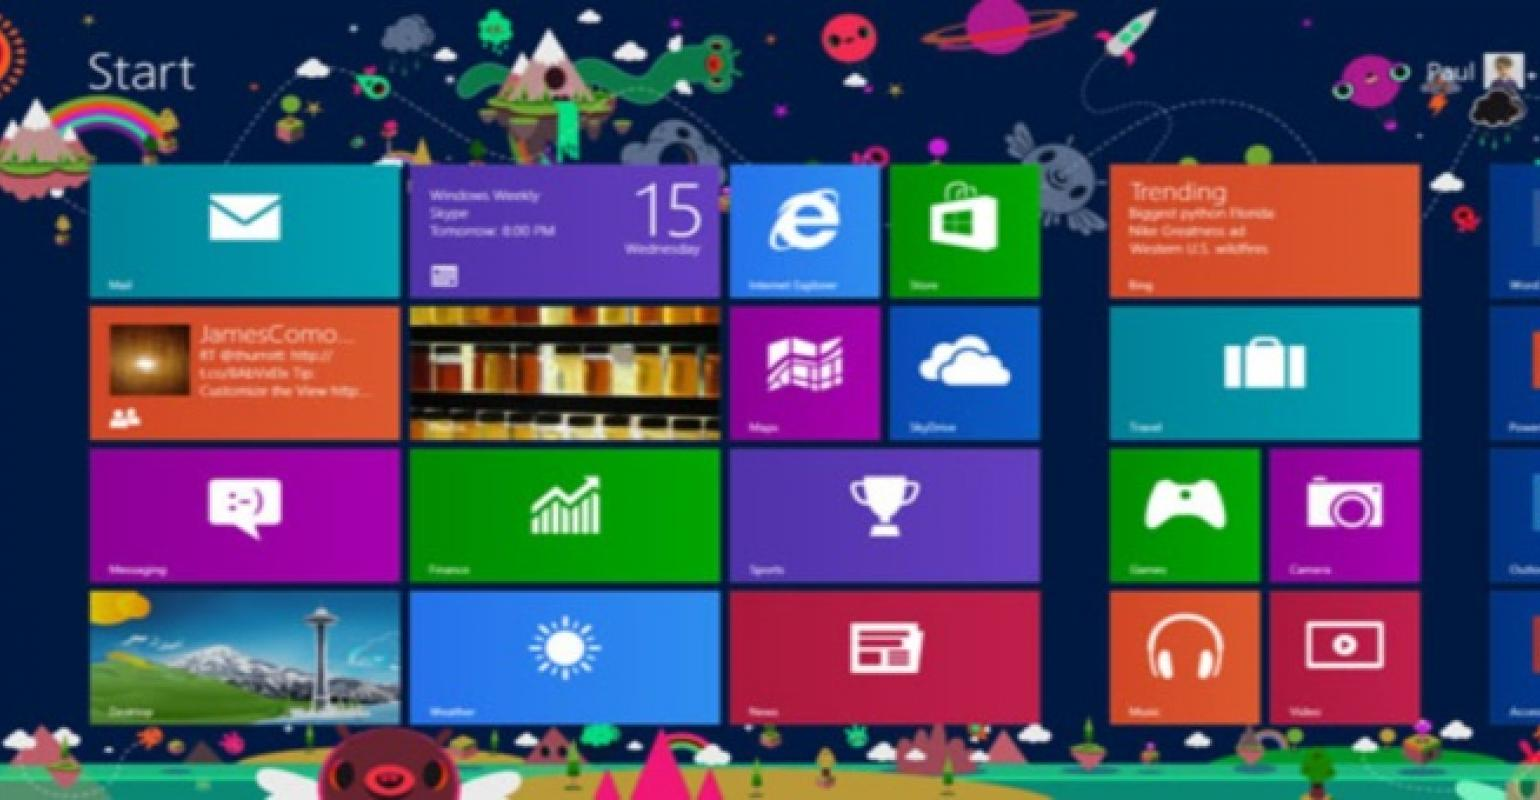 Stuck in Windows 8 Airplane Mode | IT Pro